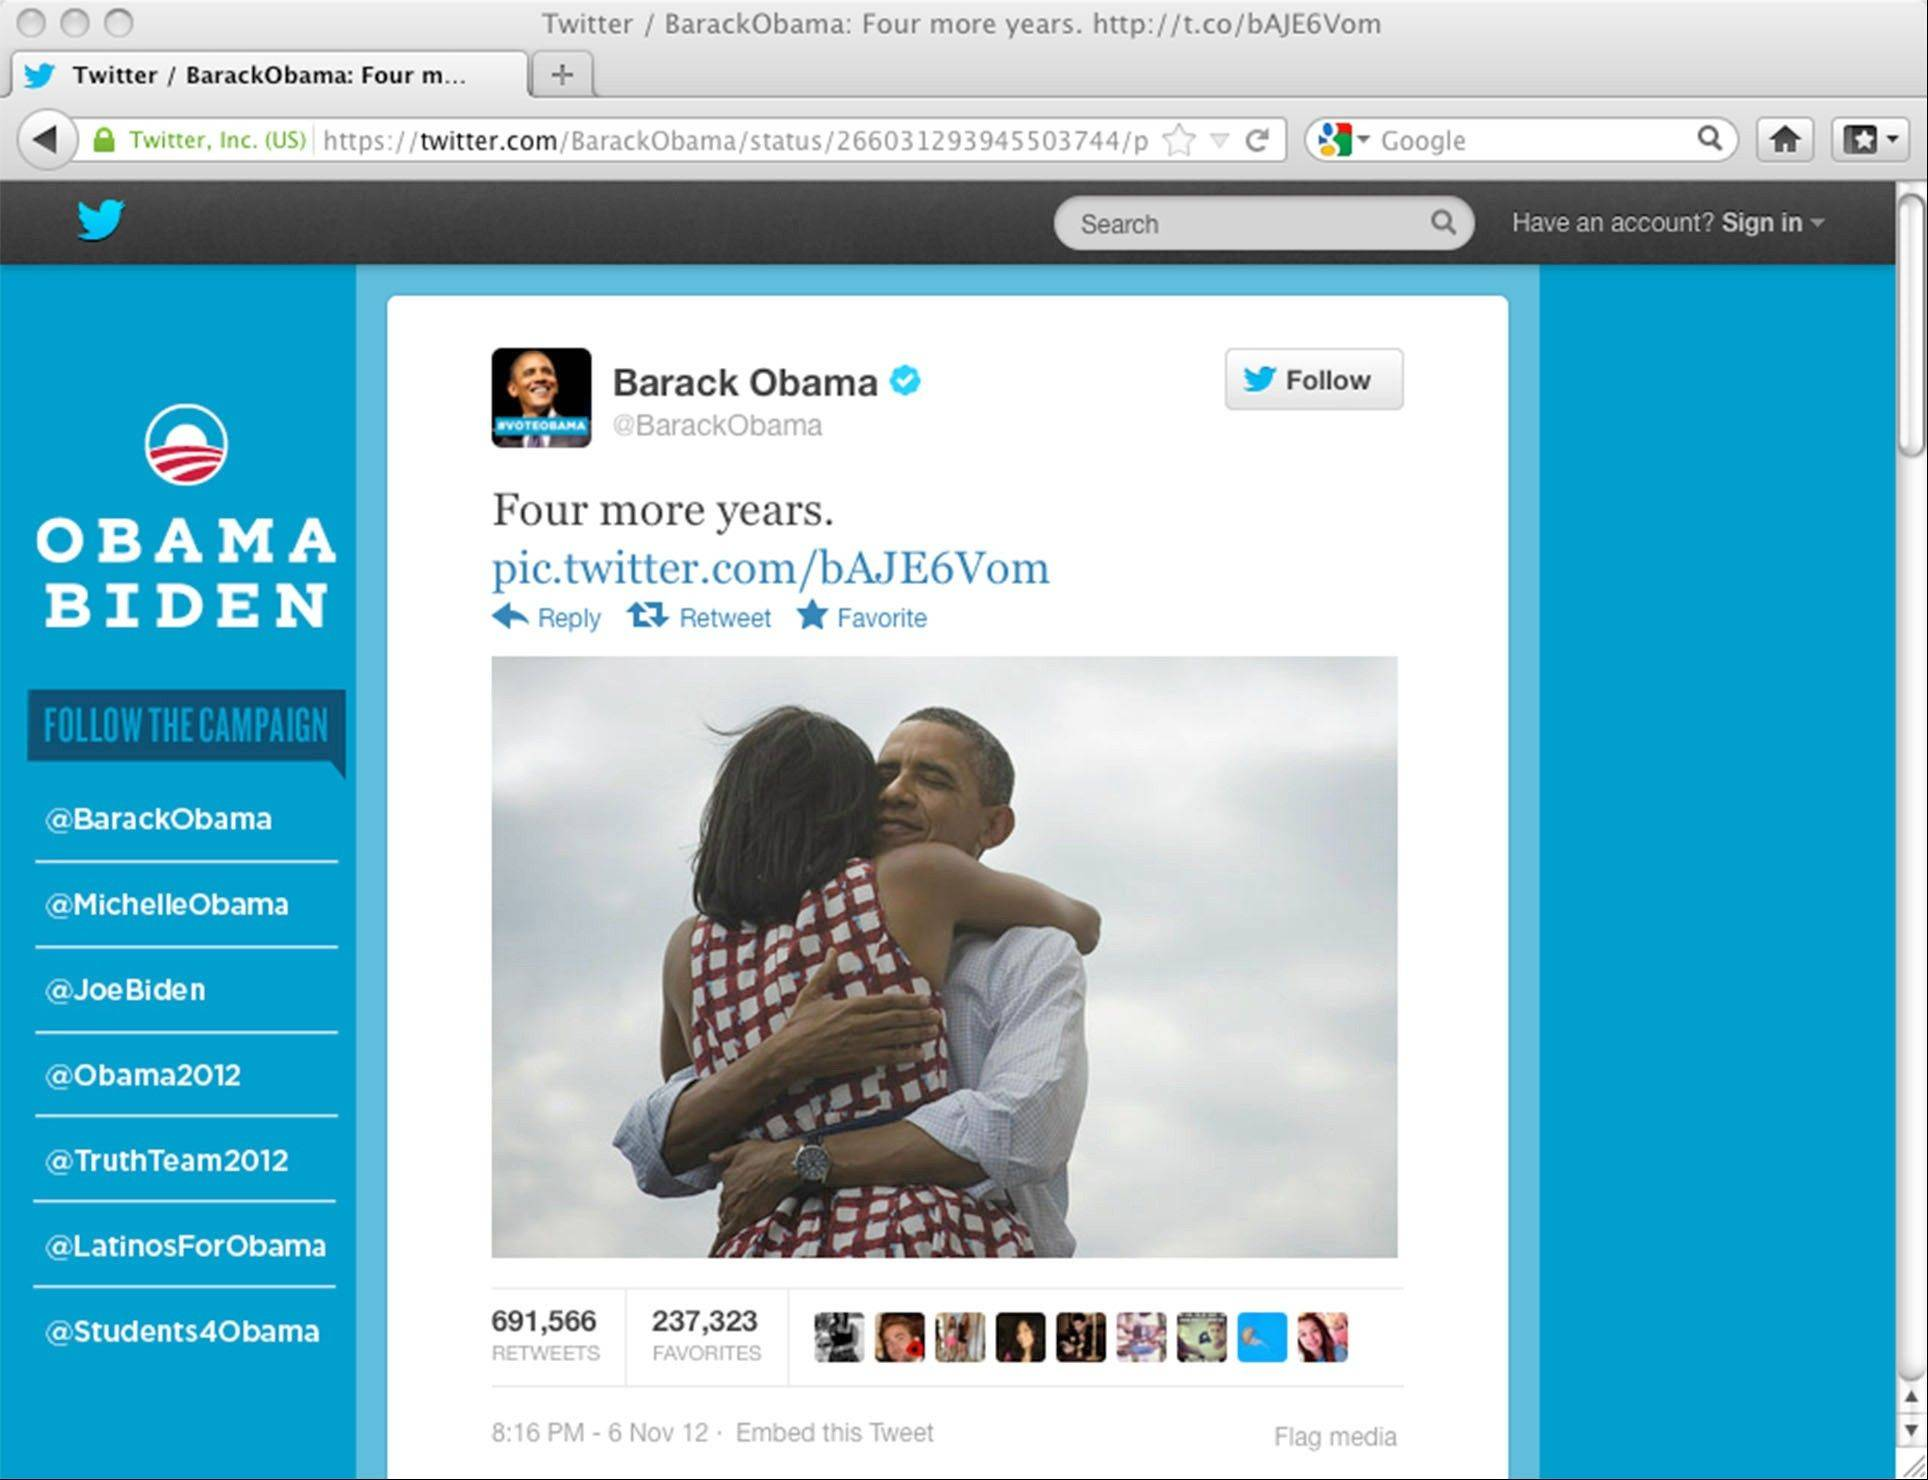 Obama photo is snapshot of modern, equal marriage